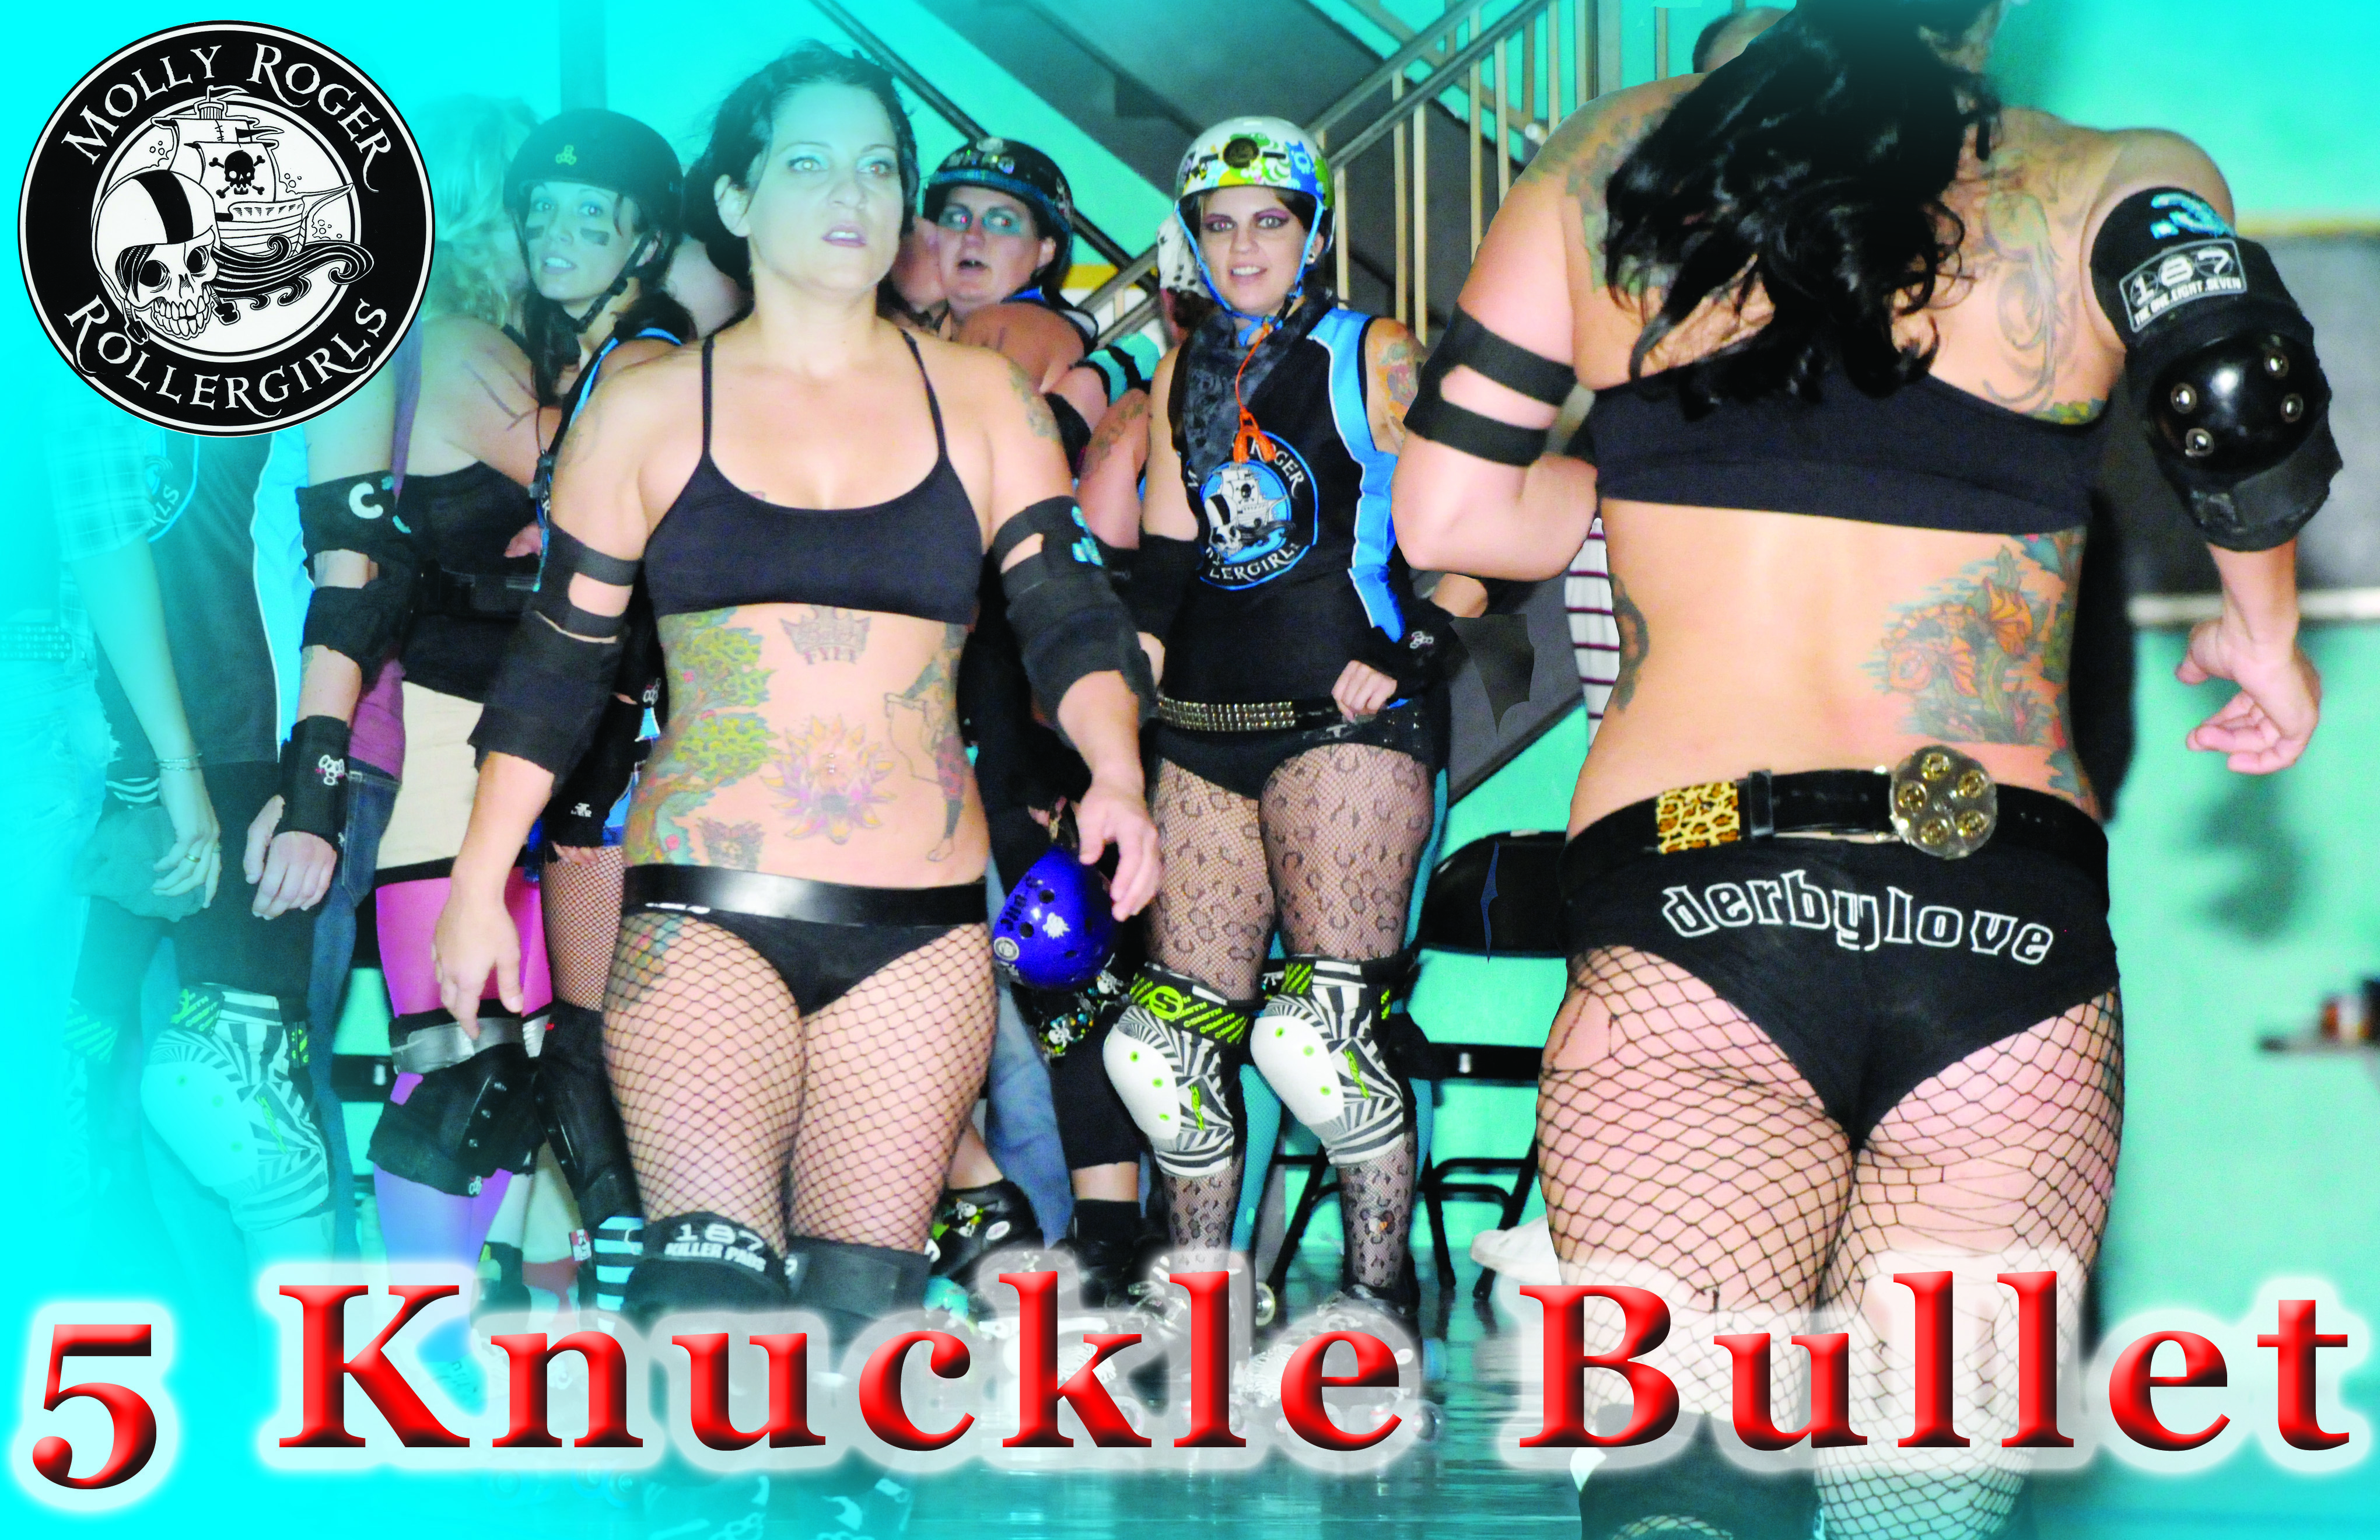 Michelle Marshall [Five Knuckle Bullet]